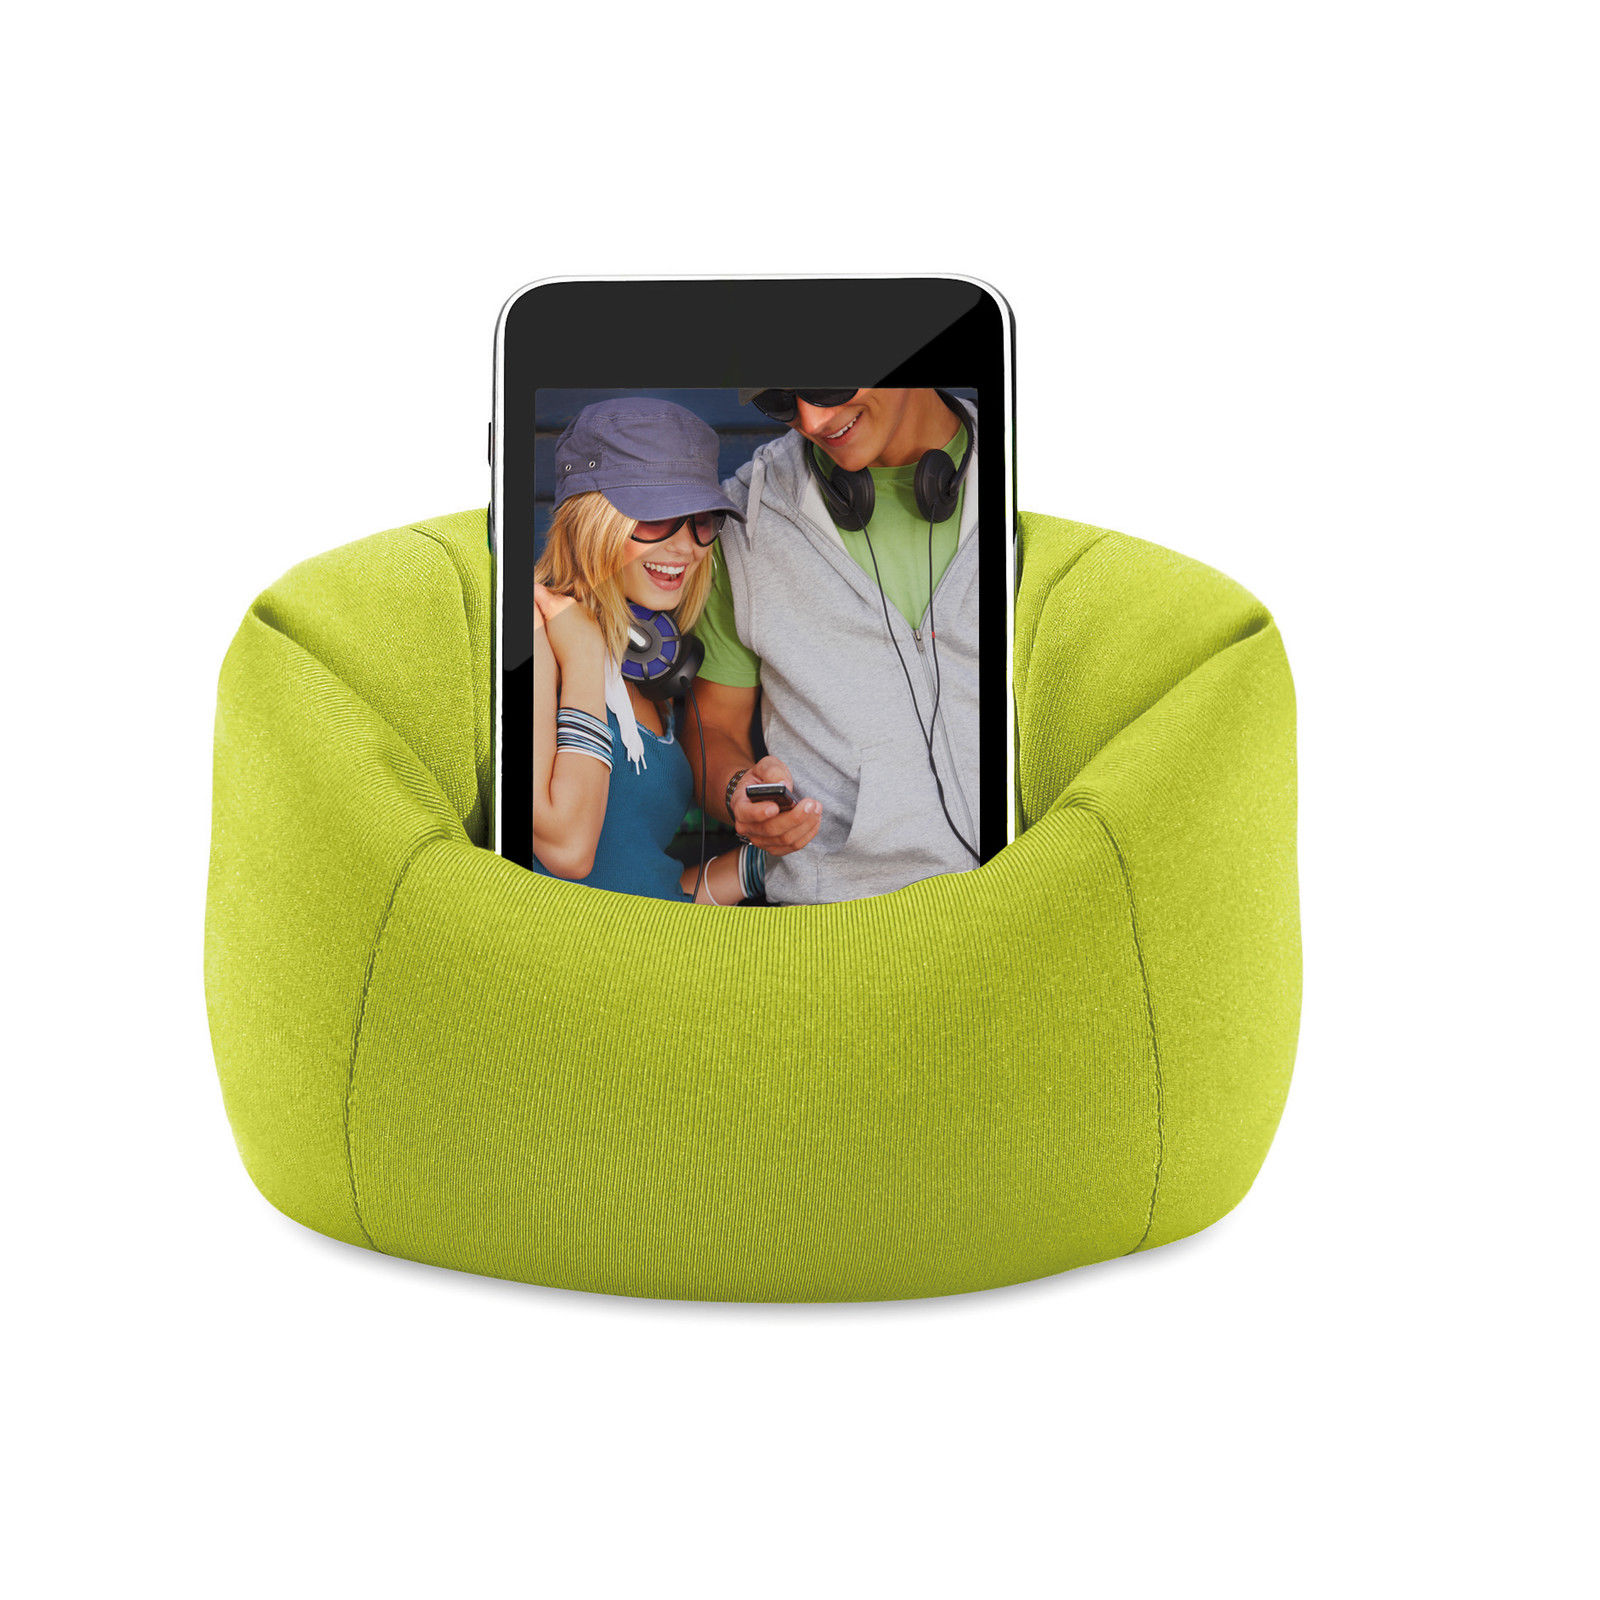 Bean-Bag-Sofa-Chair-Mobile-phone-holder-to-fit-all-brands-useful-desk-office